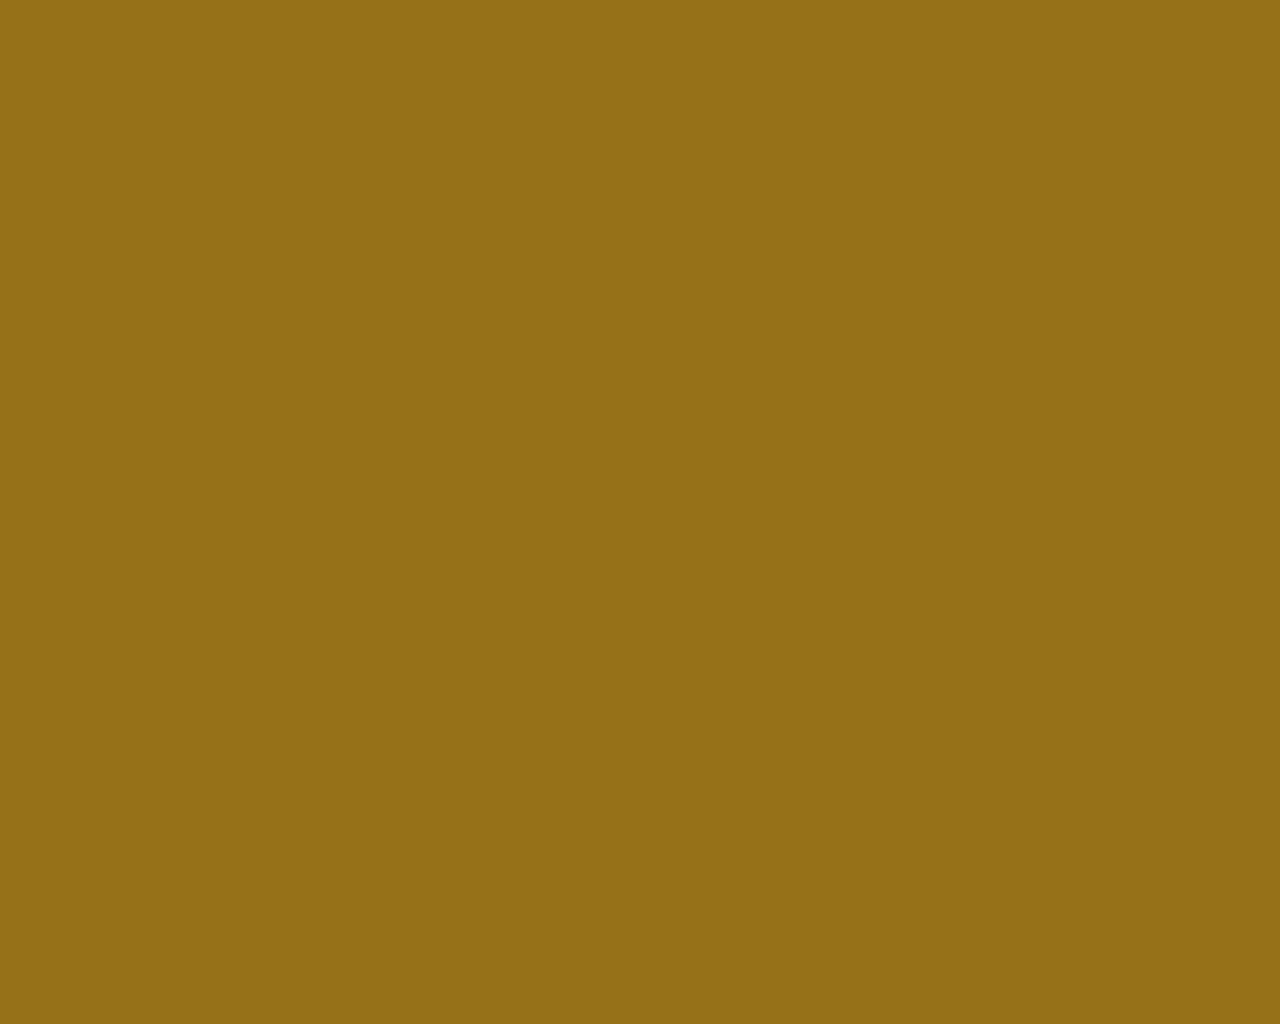 1280x1024 Bistre Brown Solid Color Background